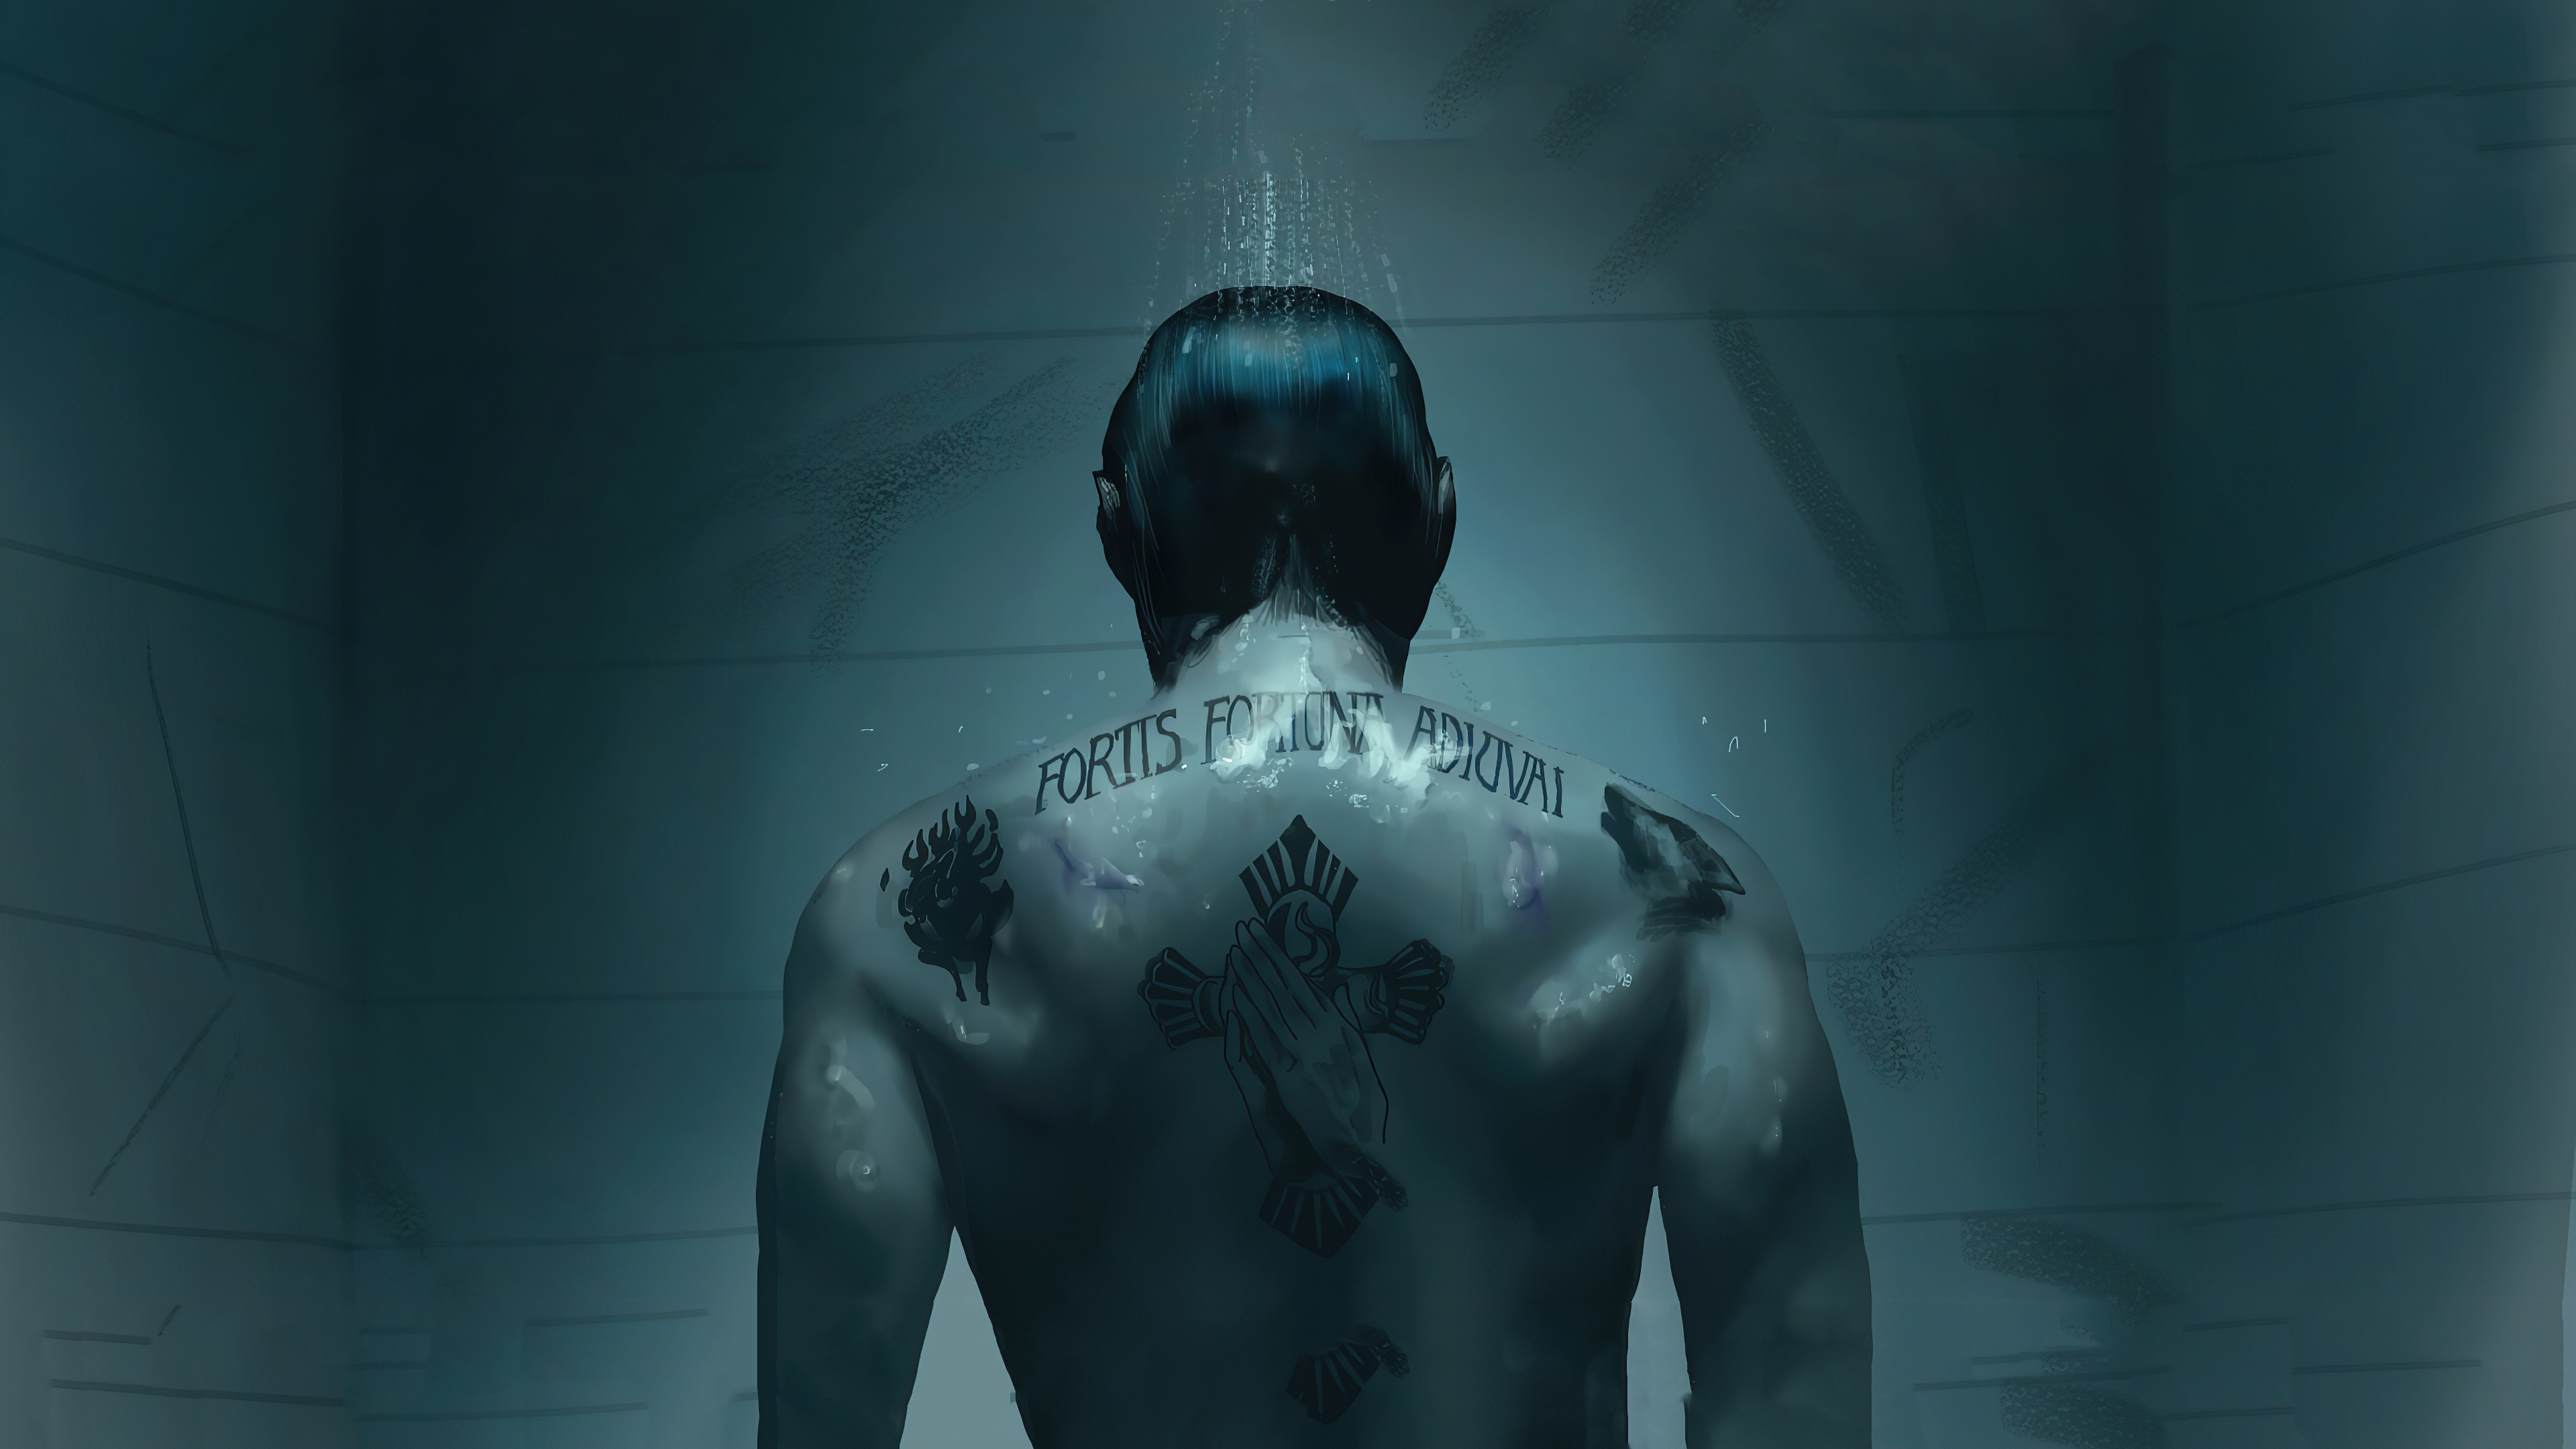 John Wick Tattoo Hd Movies 4k Wallpapers Images Backgrounds Photos And Pictures Choose from a curated selection of tattoo photos. john wick tattoo hd movies 4k